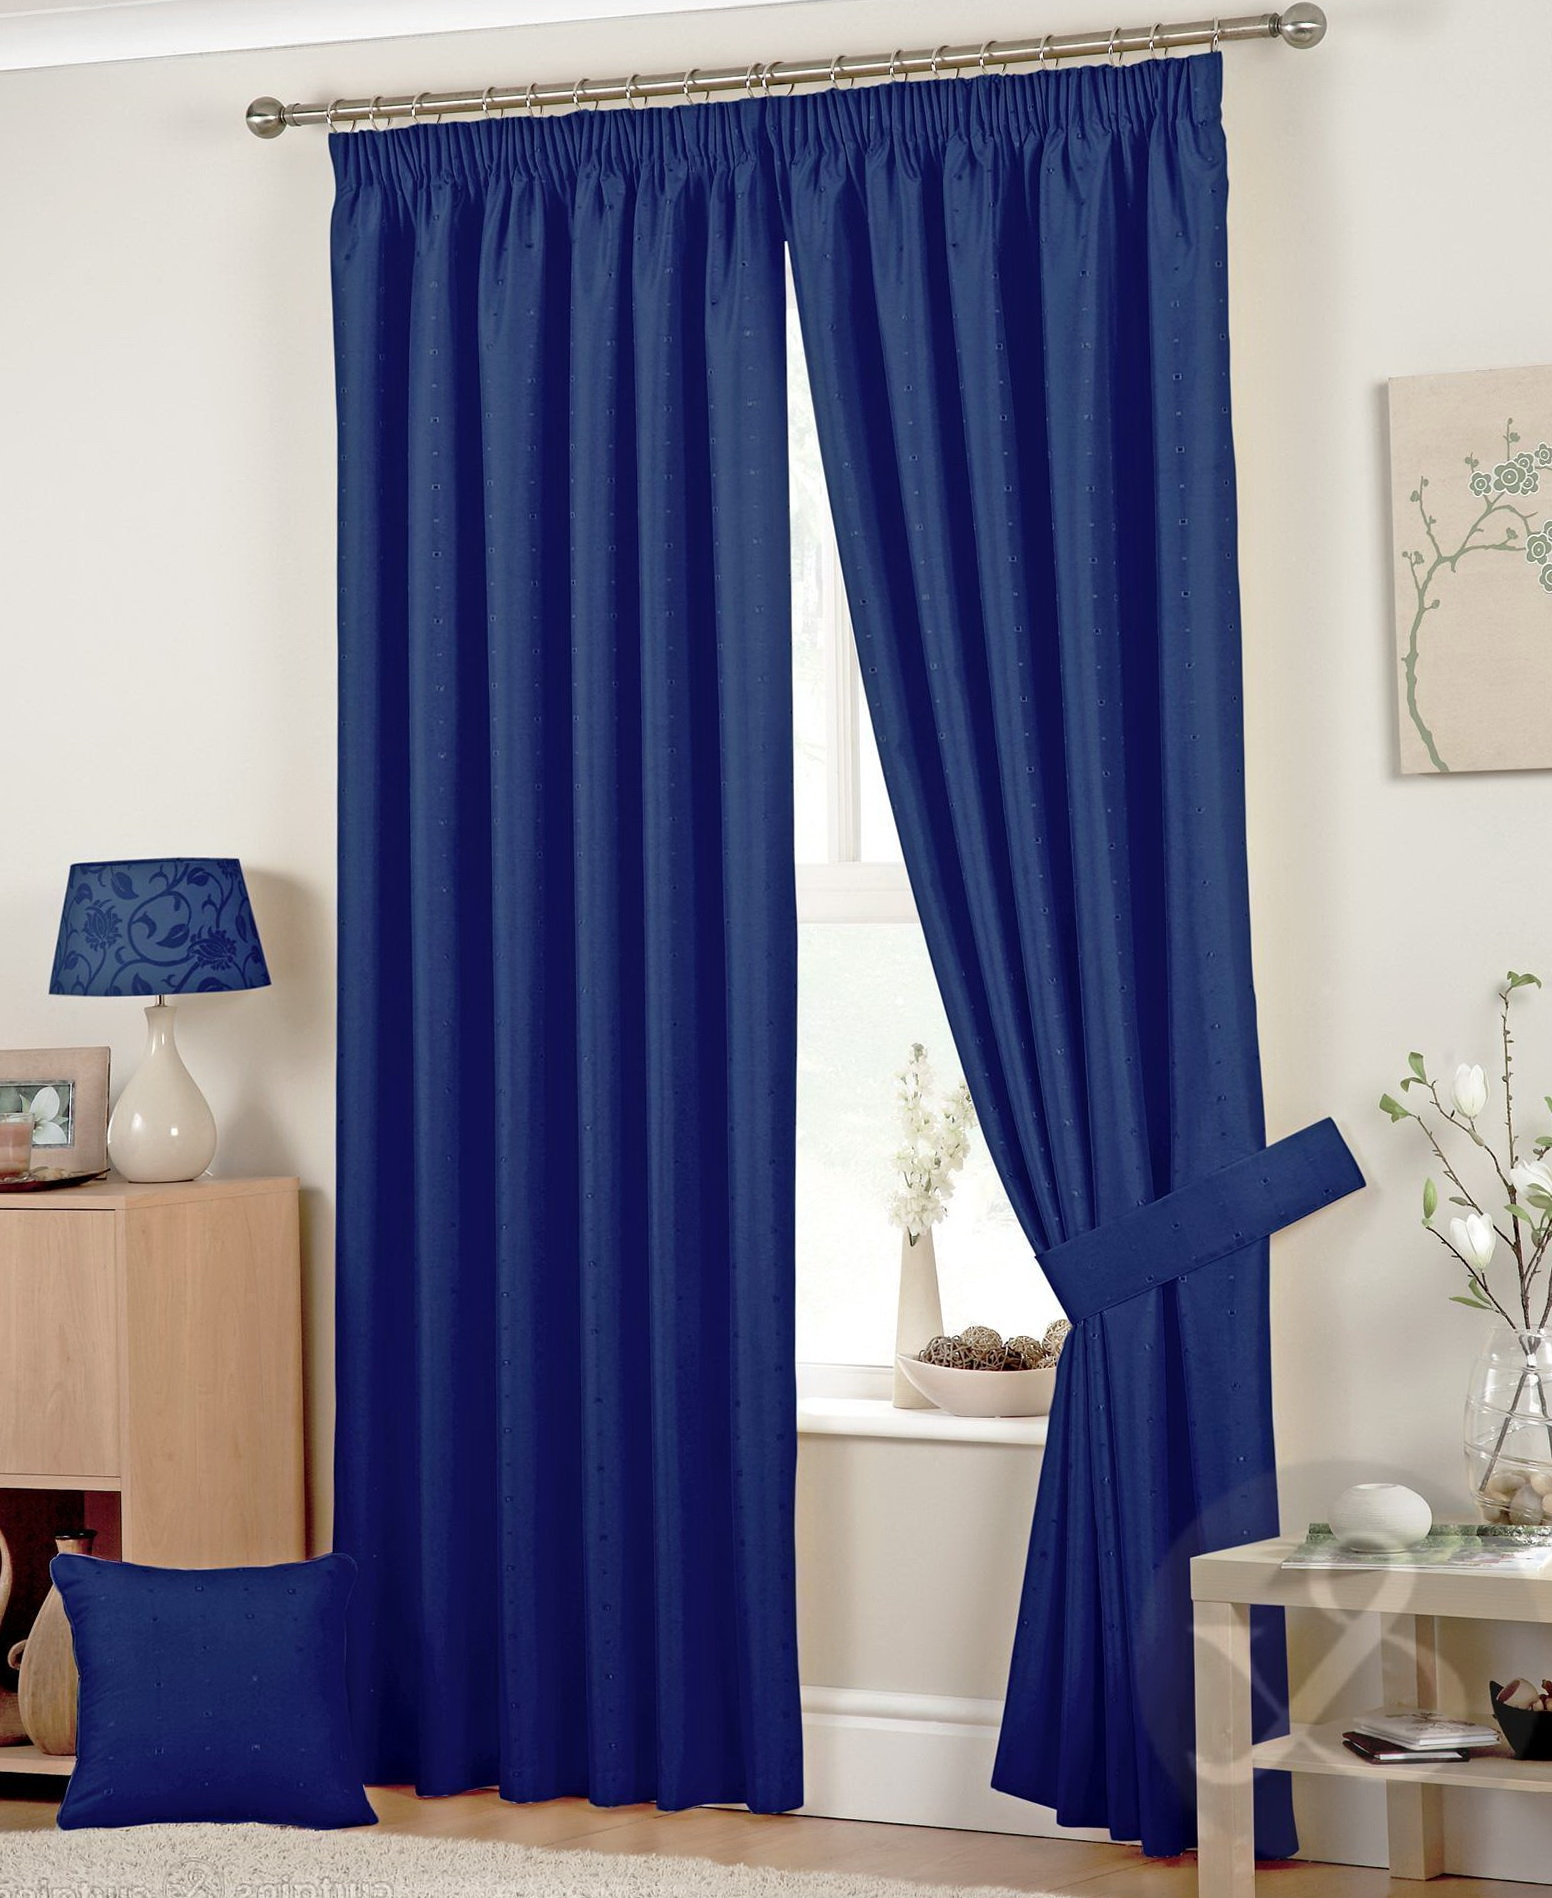 Home Design Ideas Curtains: 25 Best Ideas Blue Curtains For Boys Room